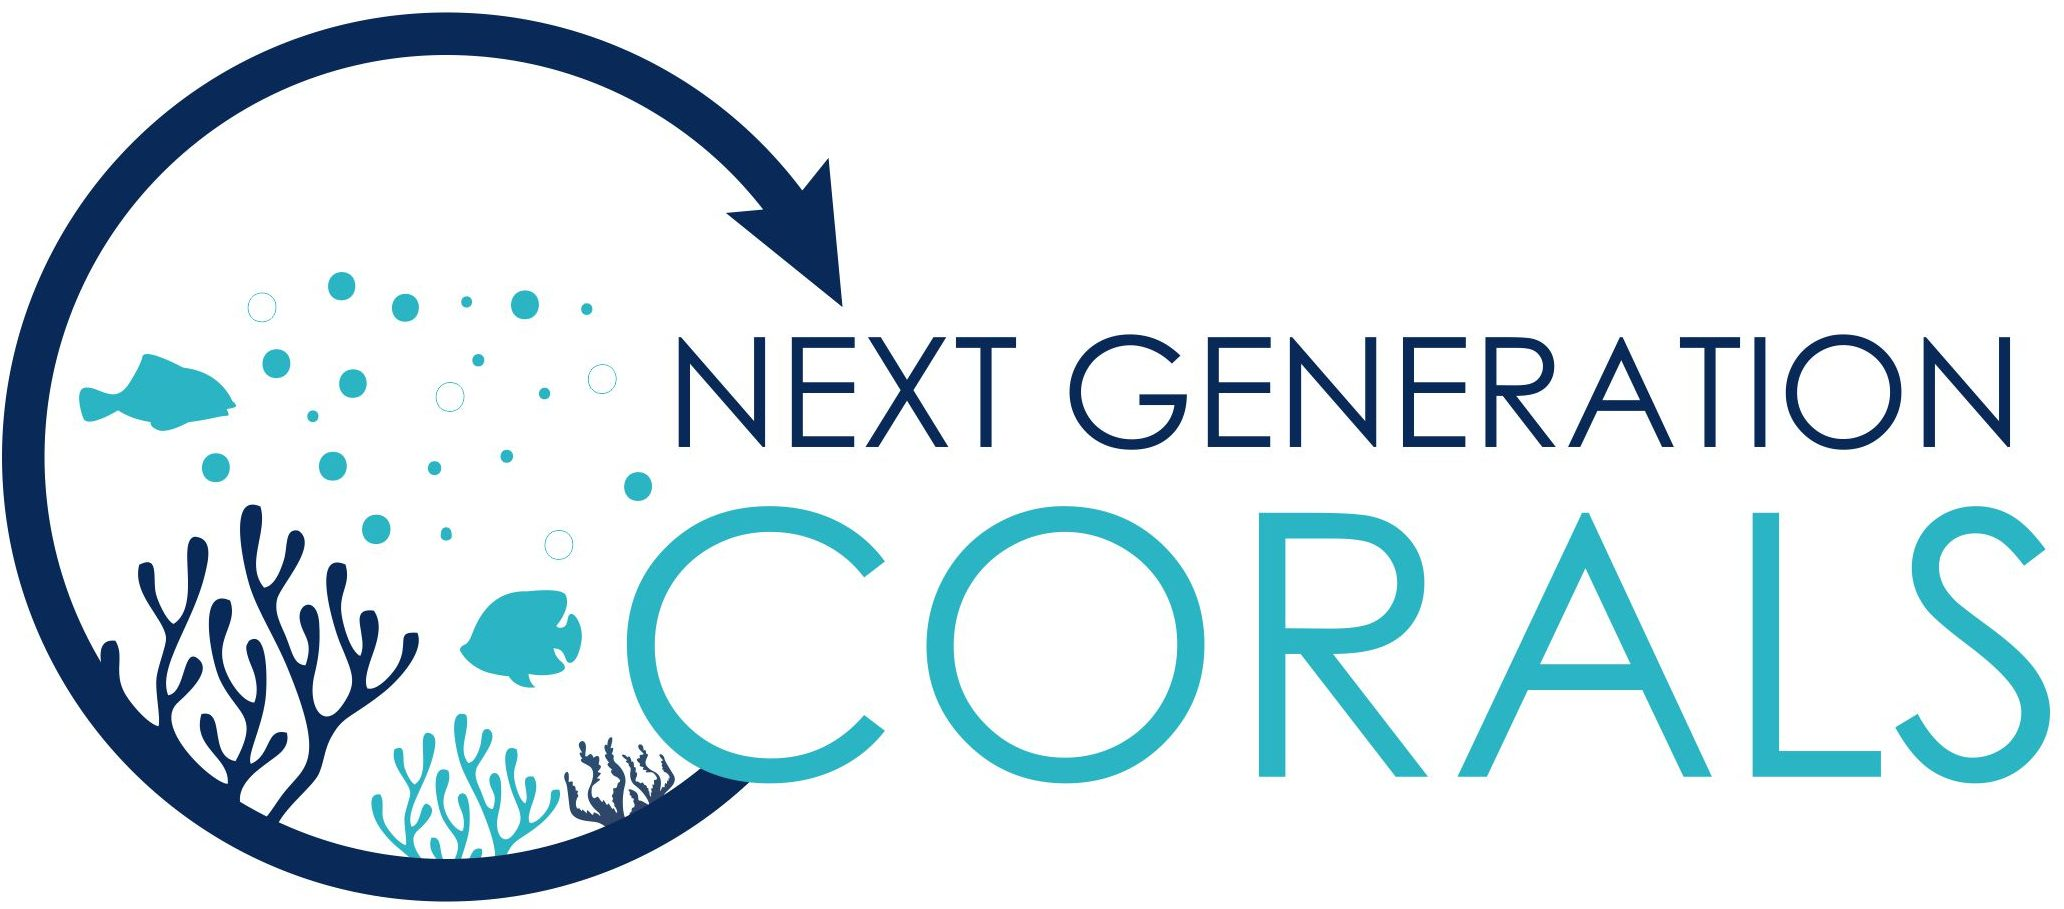 Next Generation Corals